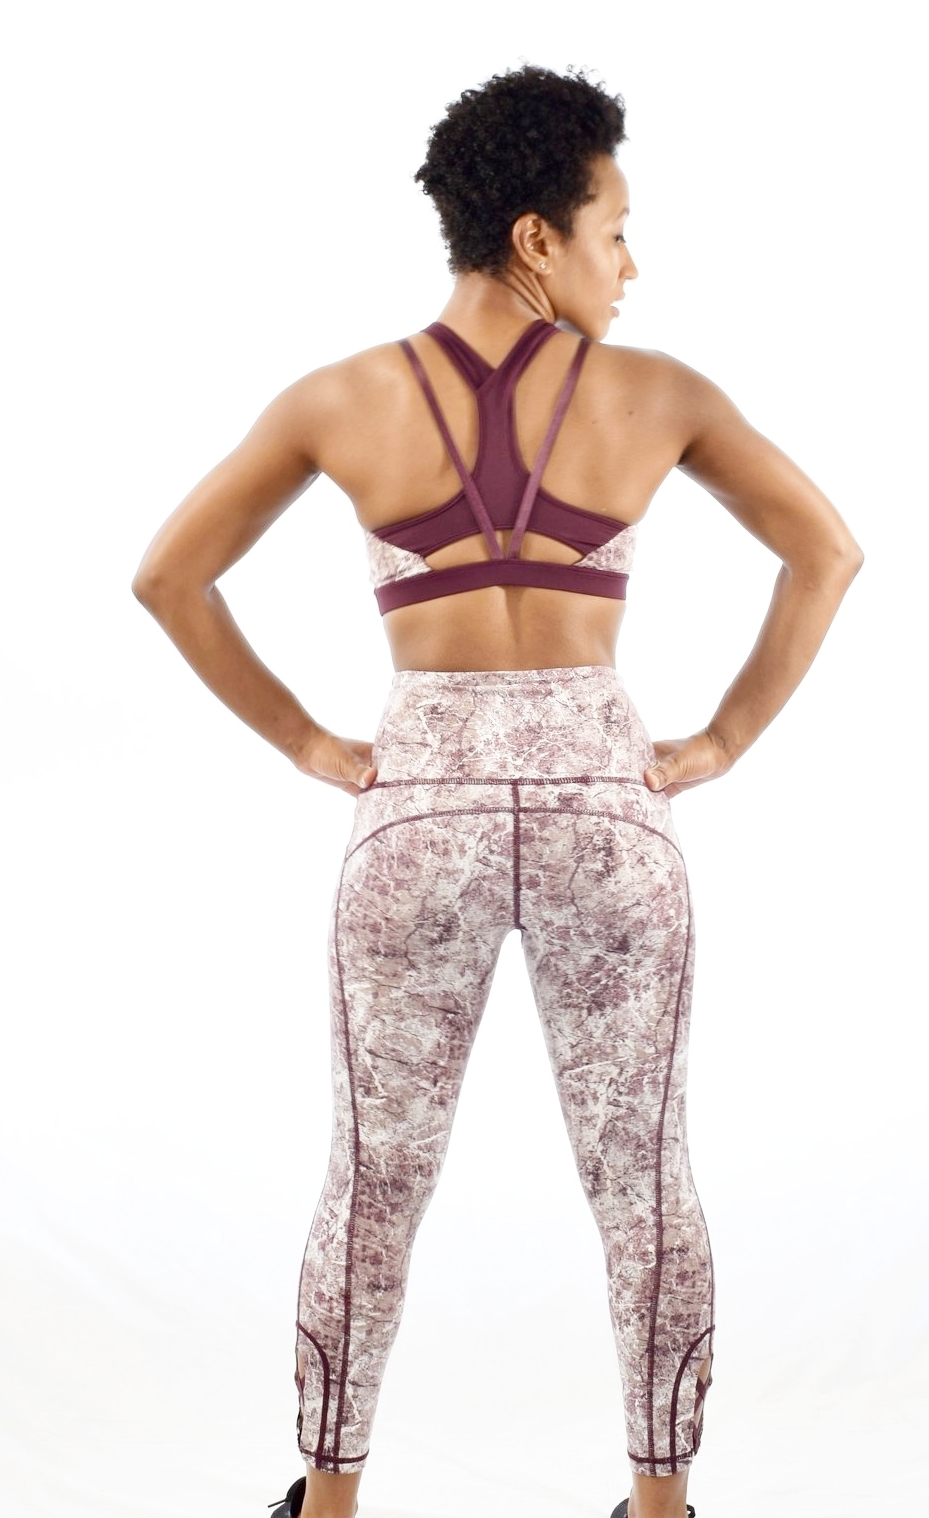 Marble Print Activewear Set - $45